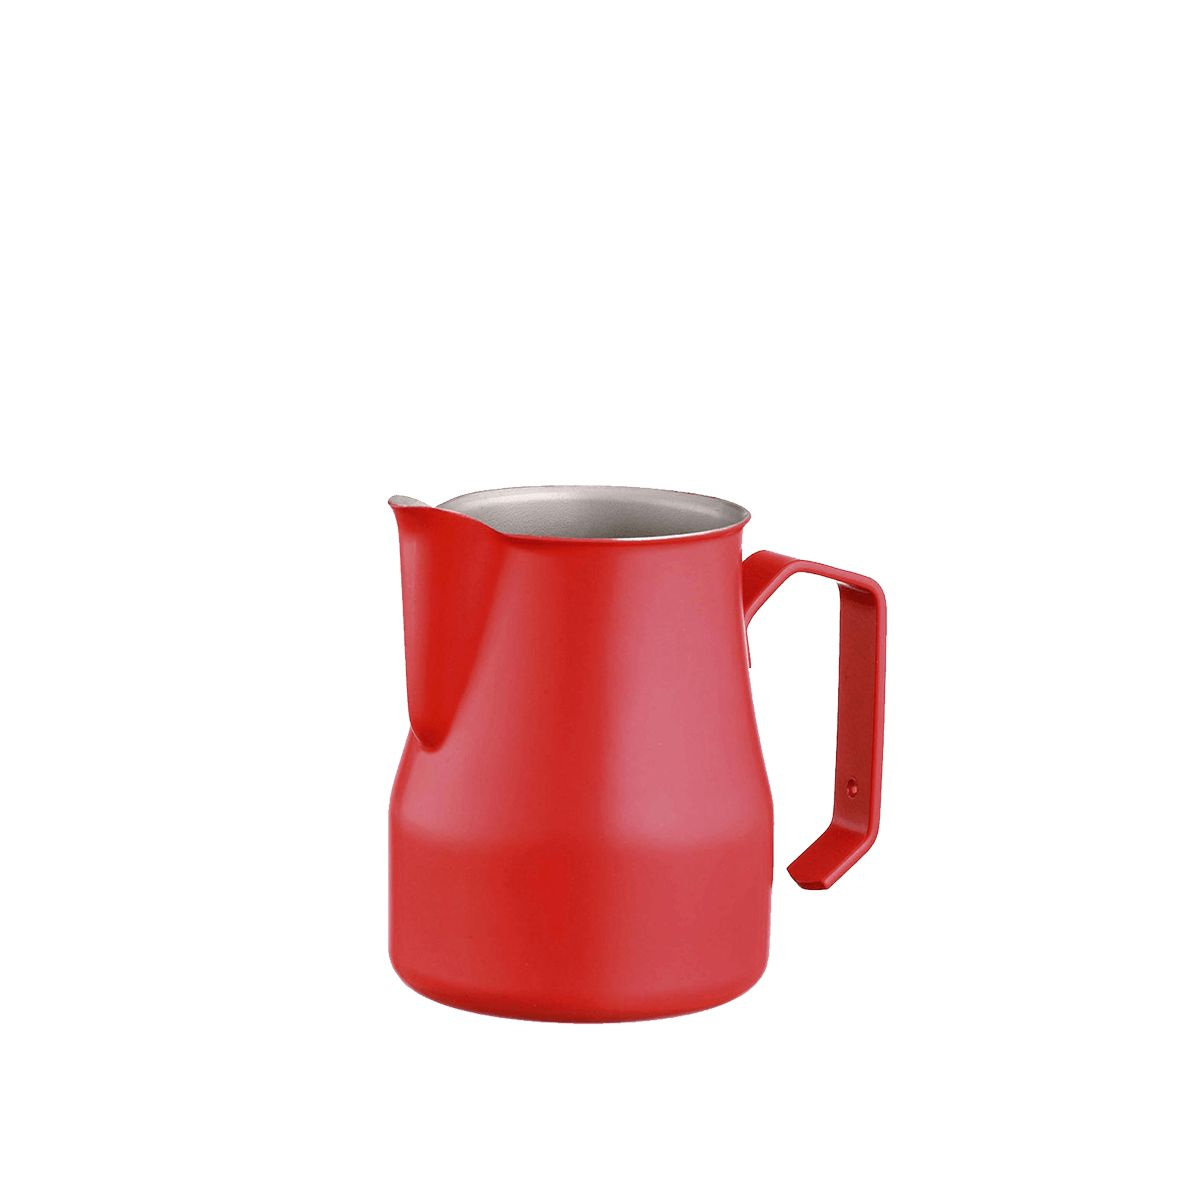 Teflon milk pitcher - Motta - Red